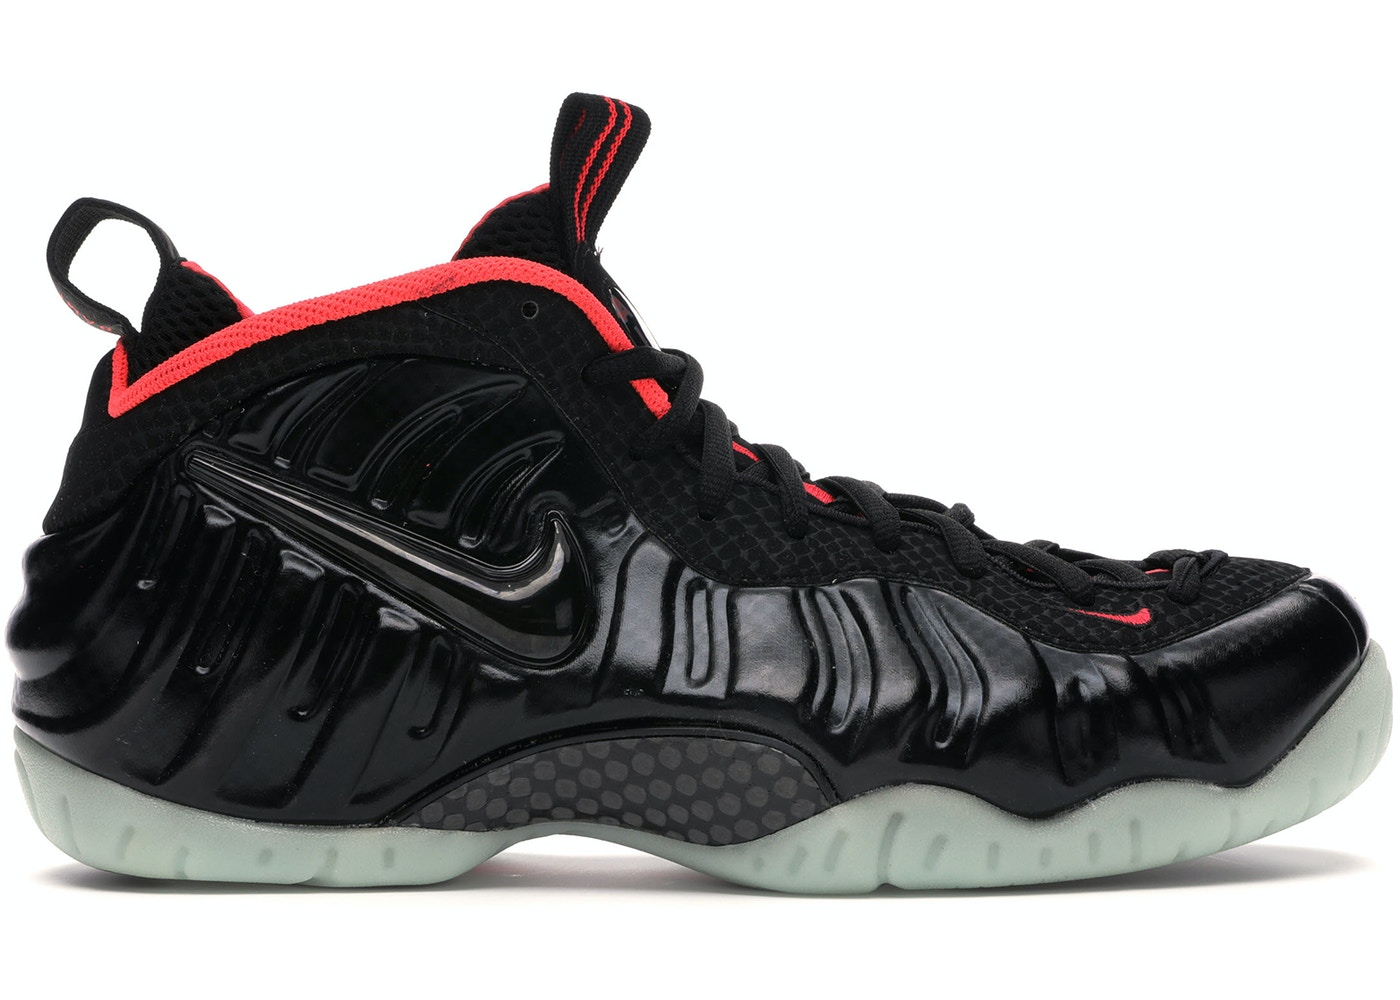 405352bb56980 Air Foamposite Pro Yeezy - 616750-001